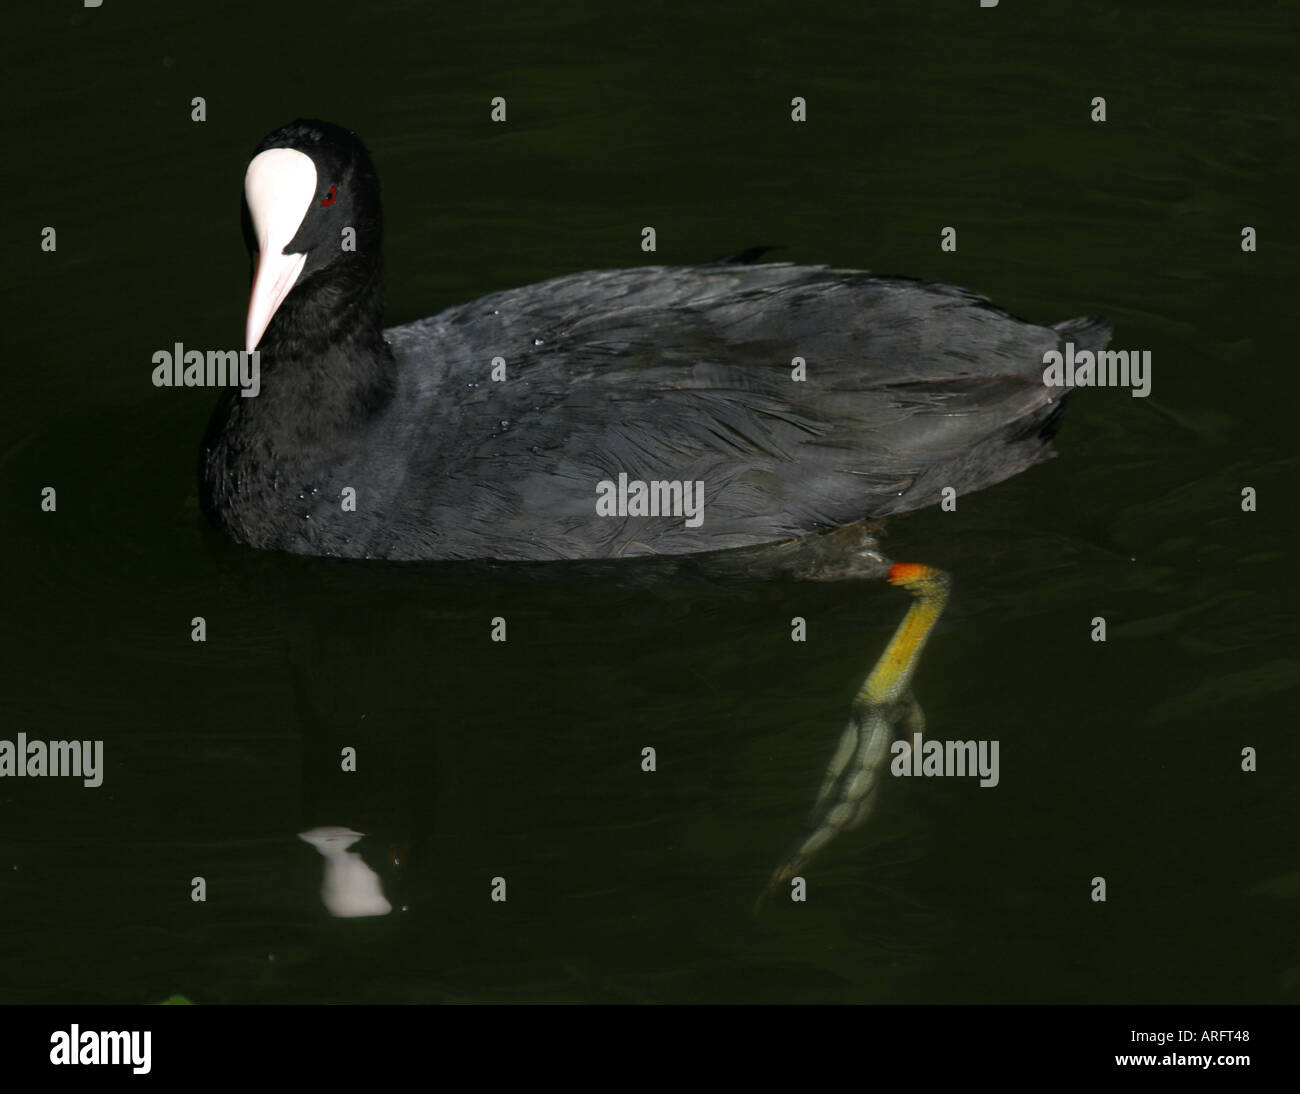 Coot with reflection and foot - Stock Image